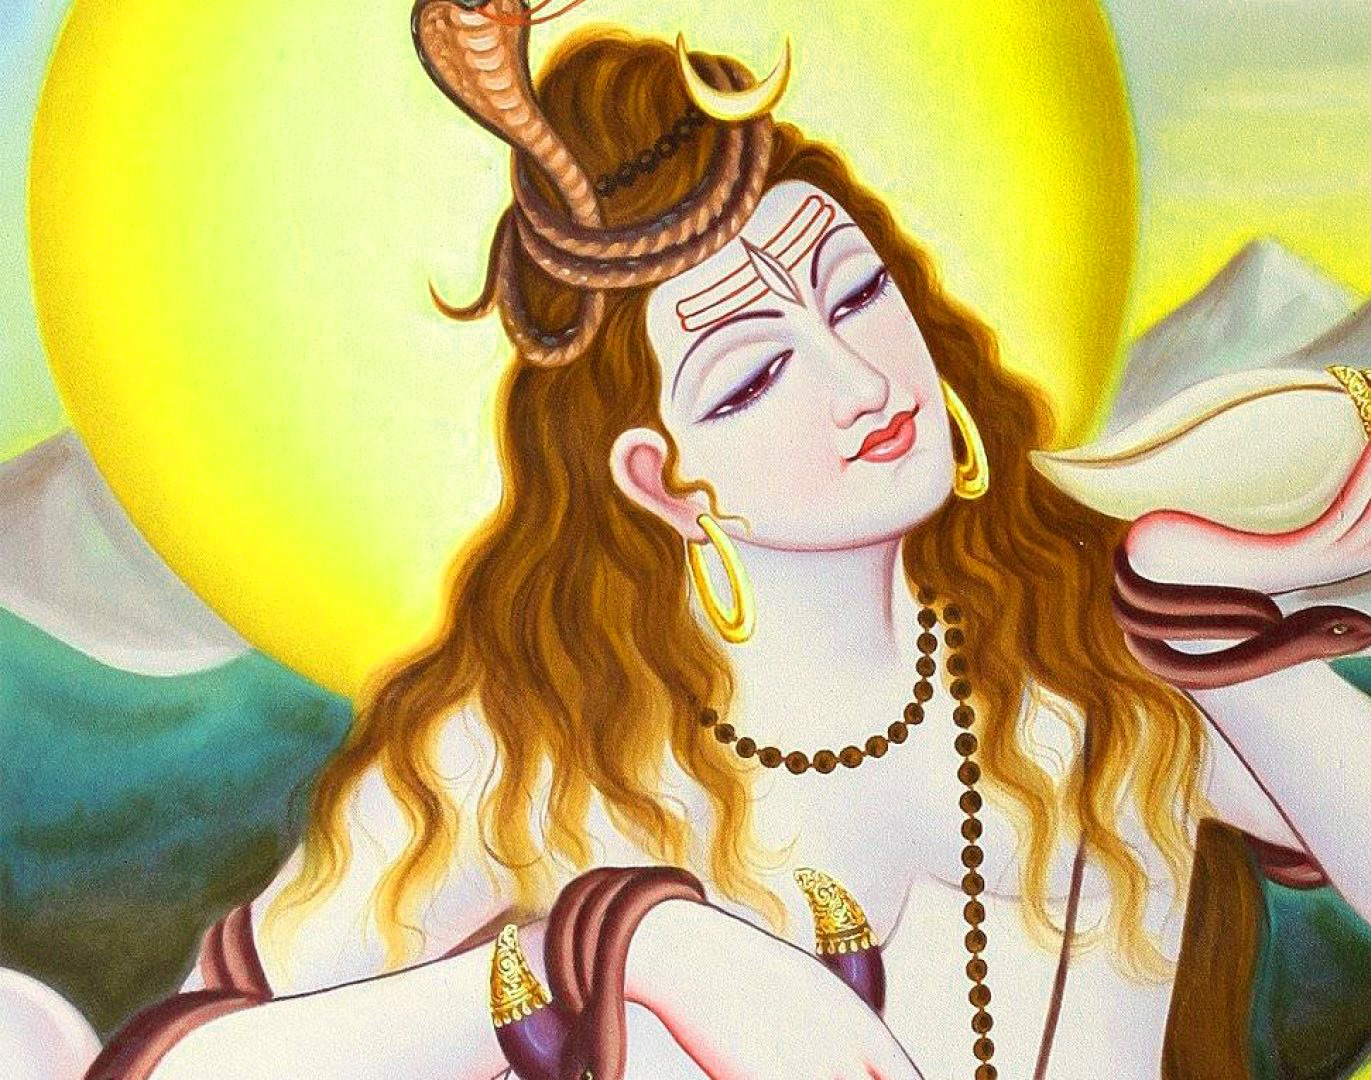 Free 1080p Lord Shiva Images Wallpaper